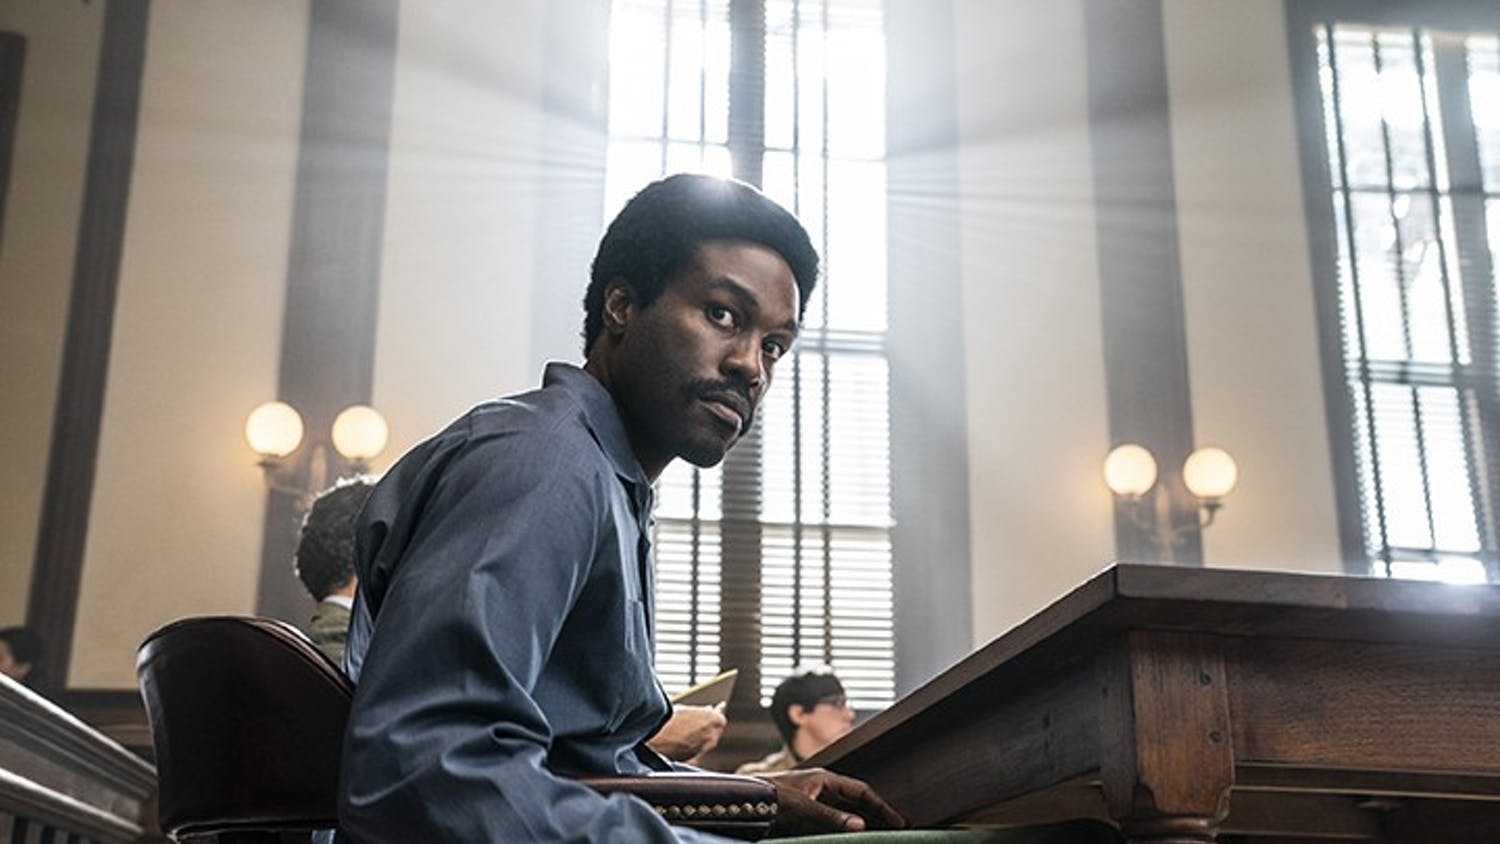 """Yahya Abdul-Mateen II plays Bobby Seale in the new movie """"The Trial of the Chicago 7,"""" which premiered on Netflix on Oct. 16, 2020."""